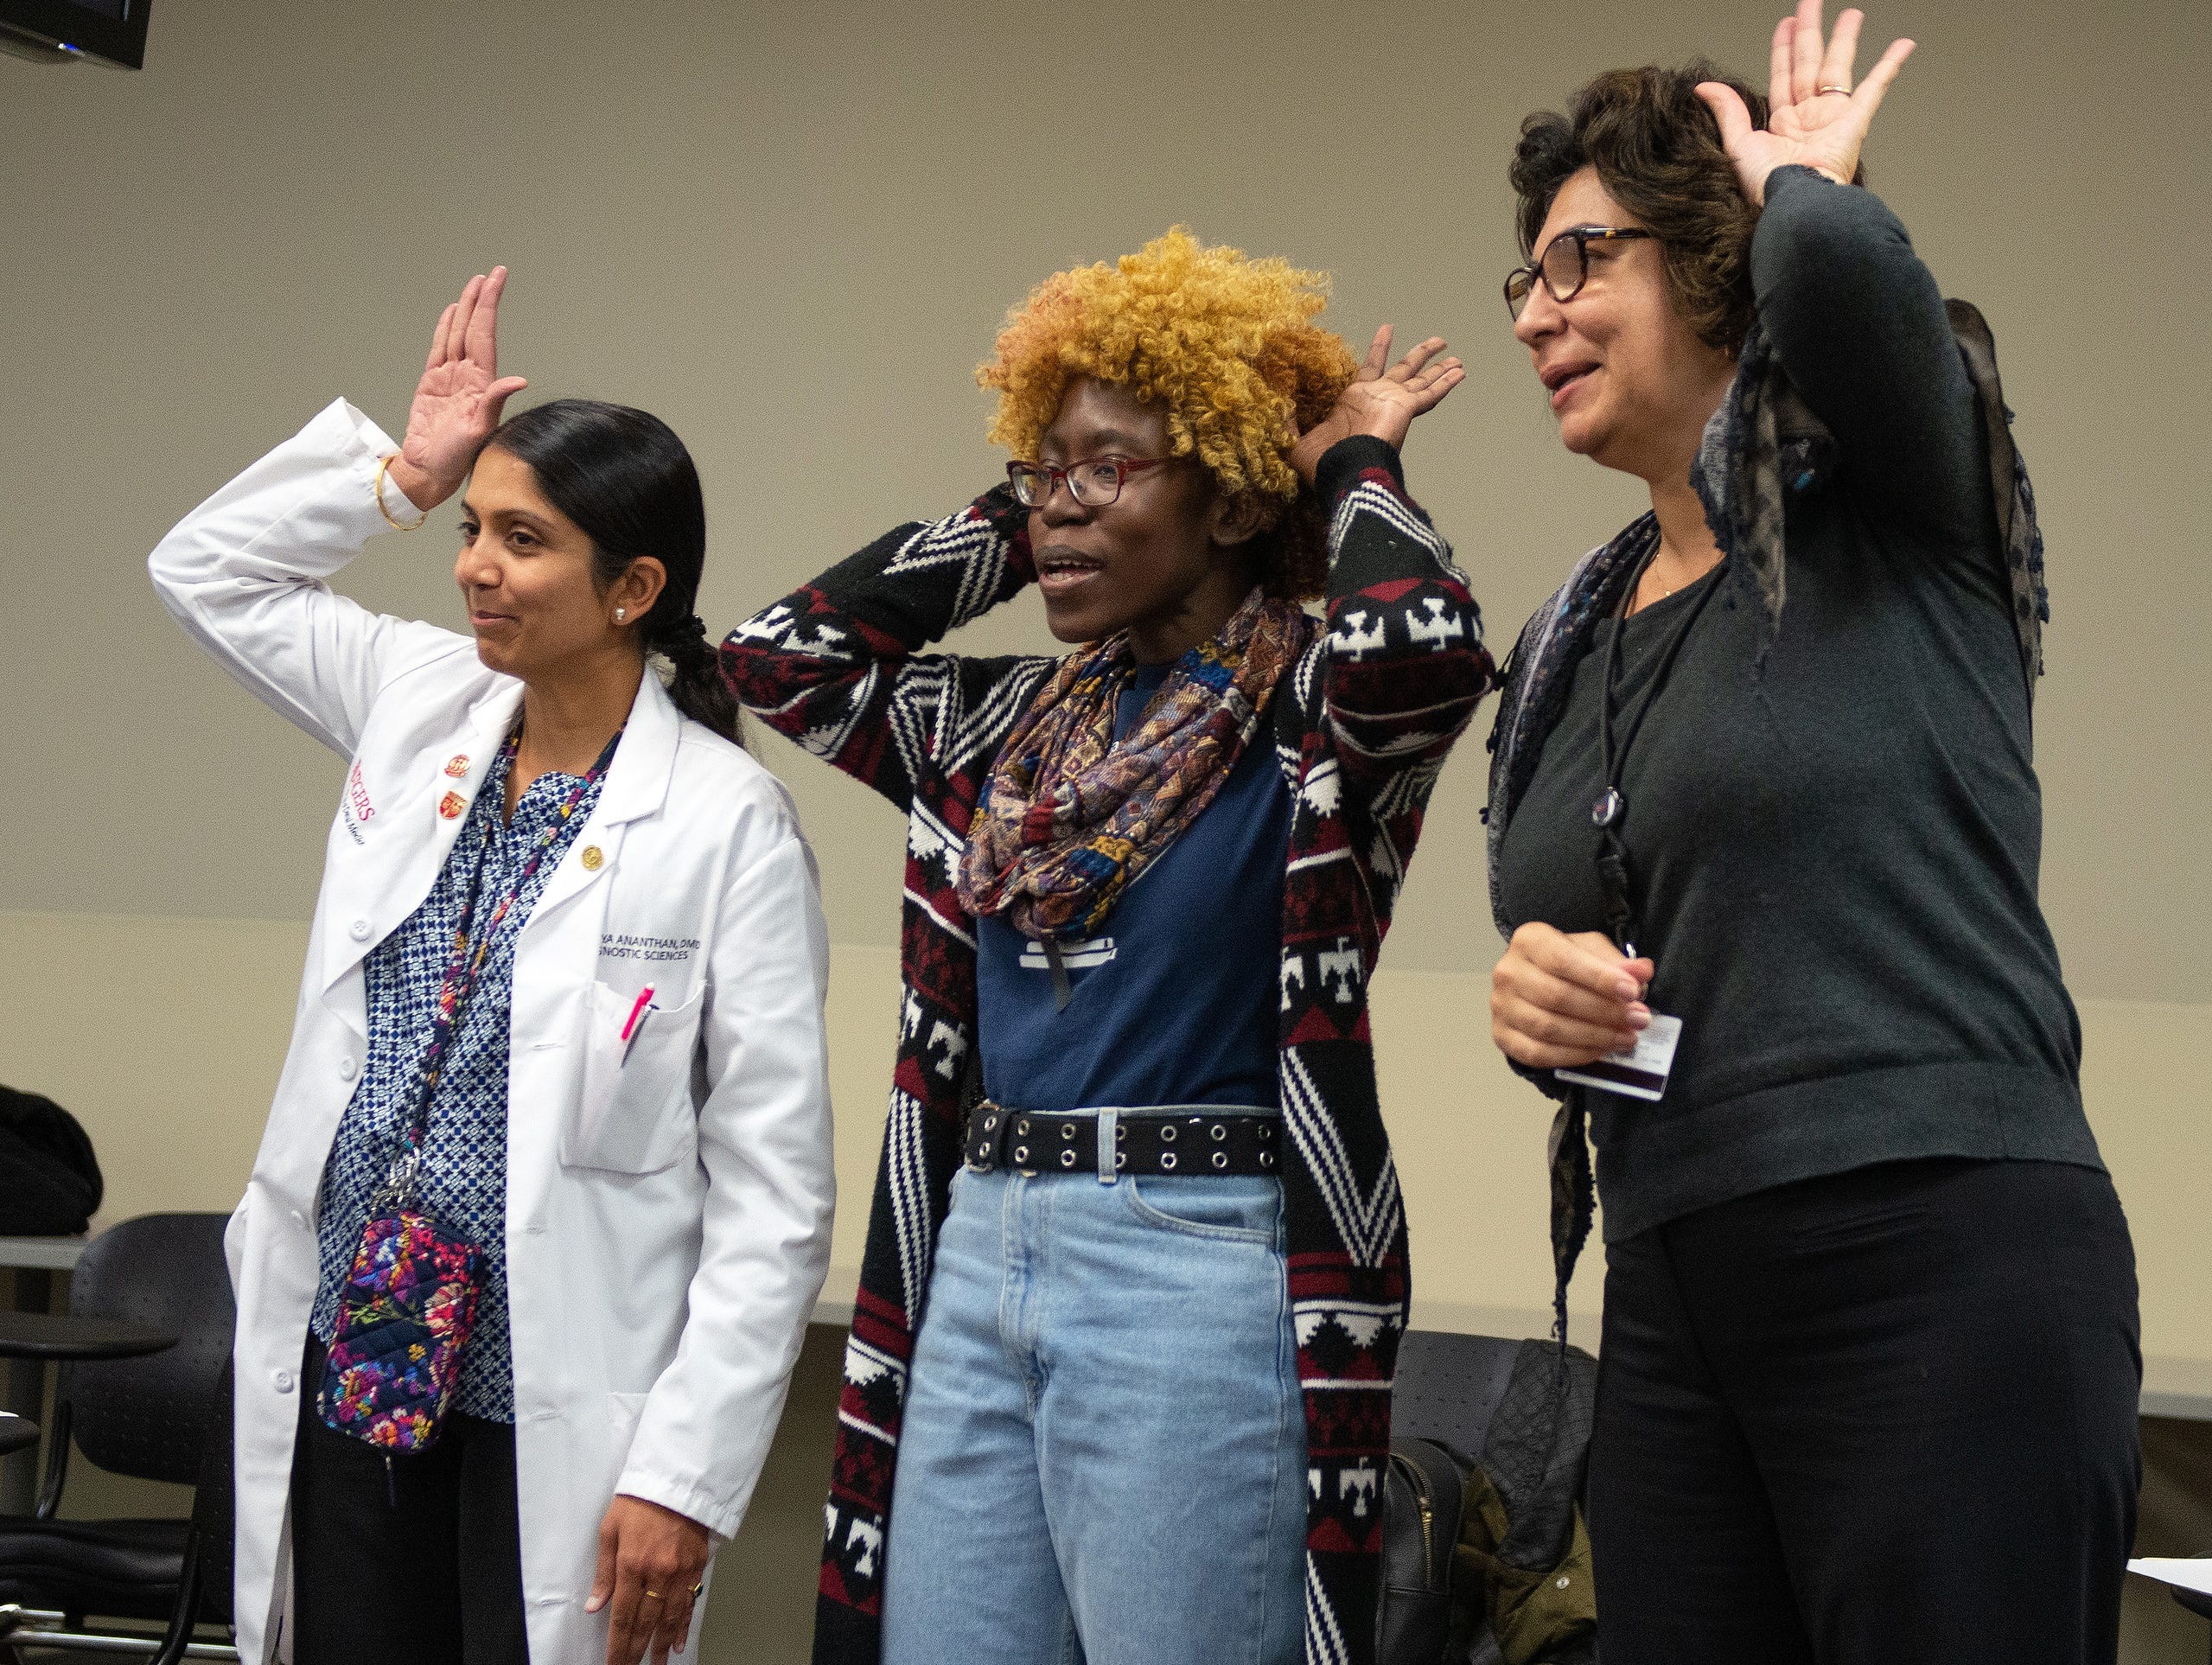 Rutgers Medical Researchers use Improv to Improve Communication Skills